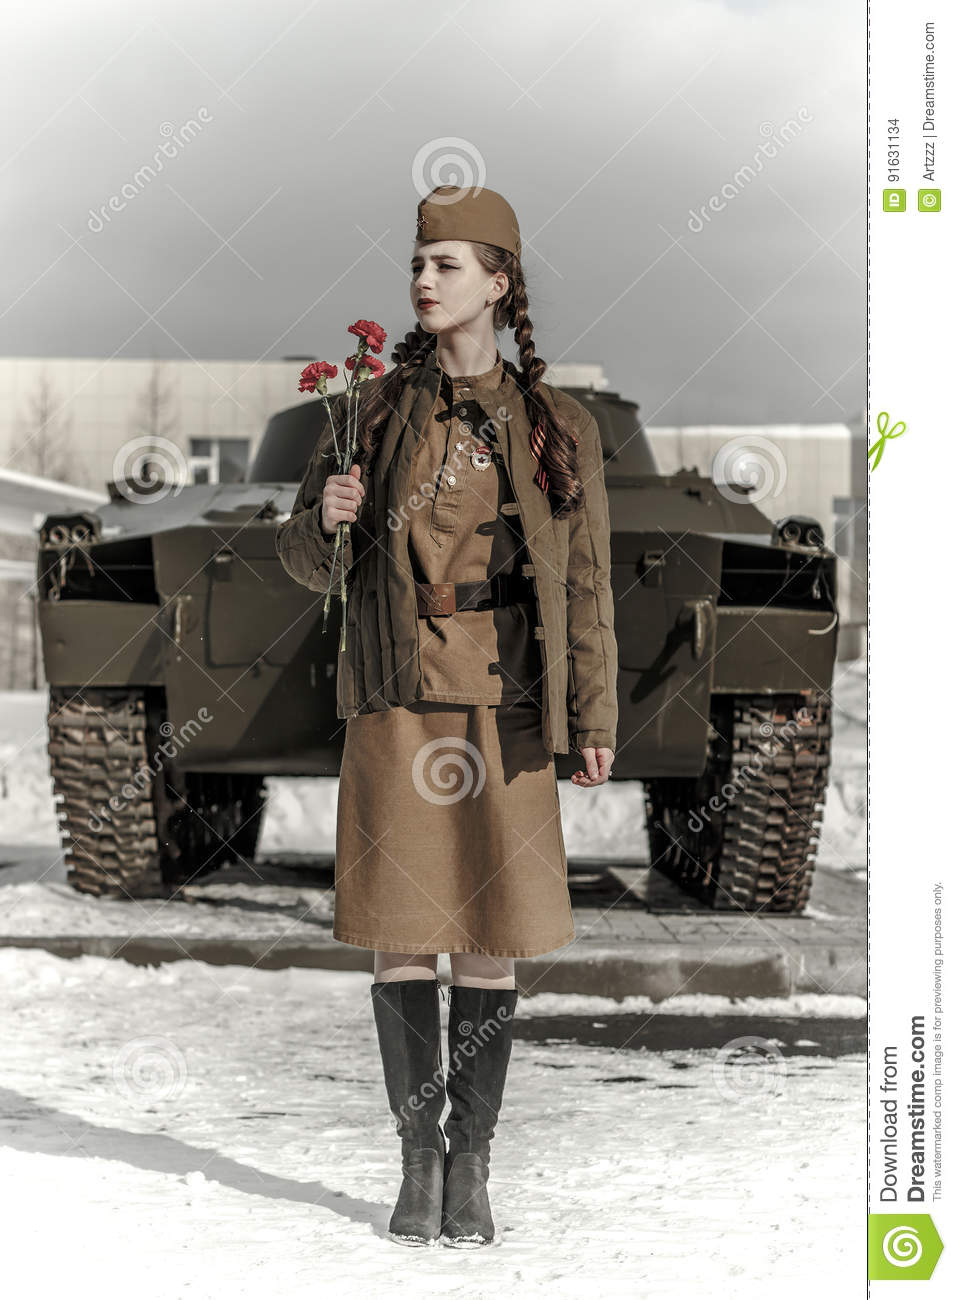 naked girl with military uniform